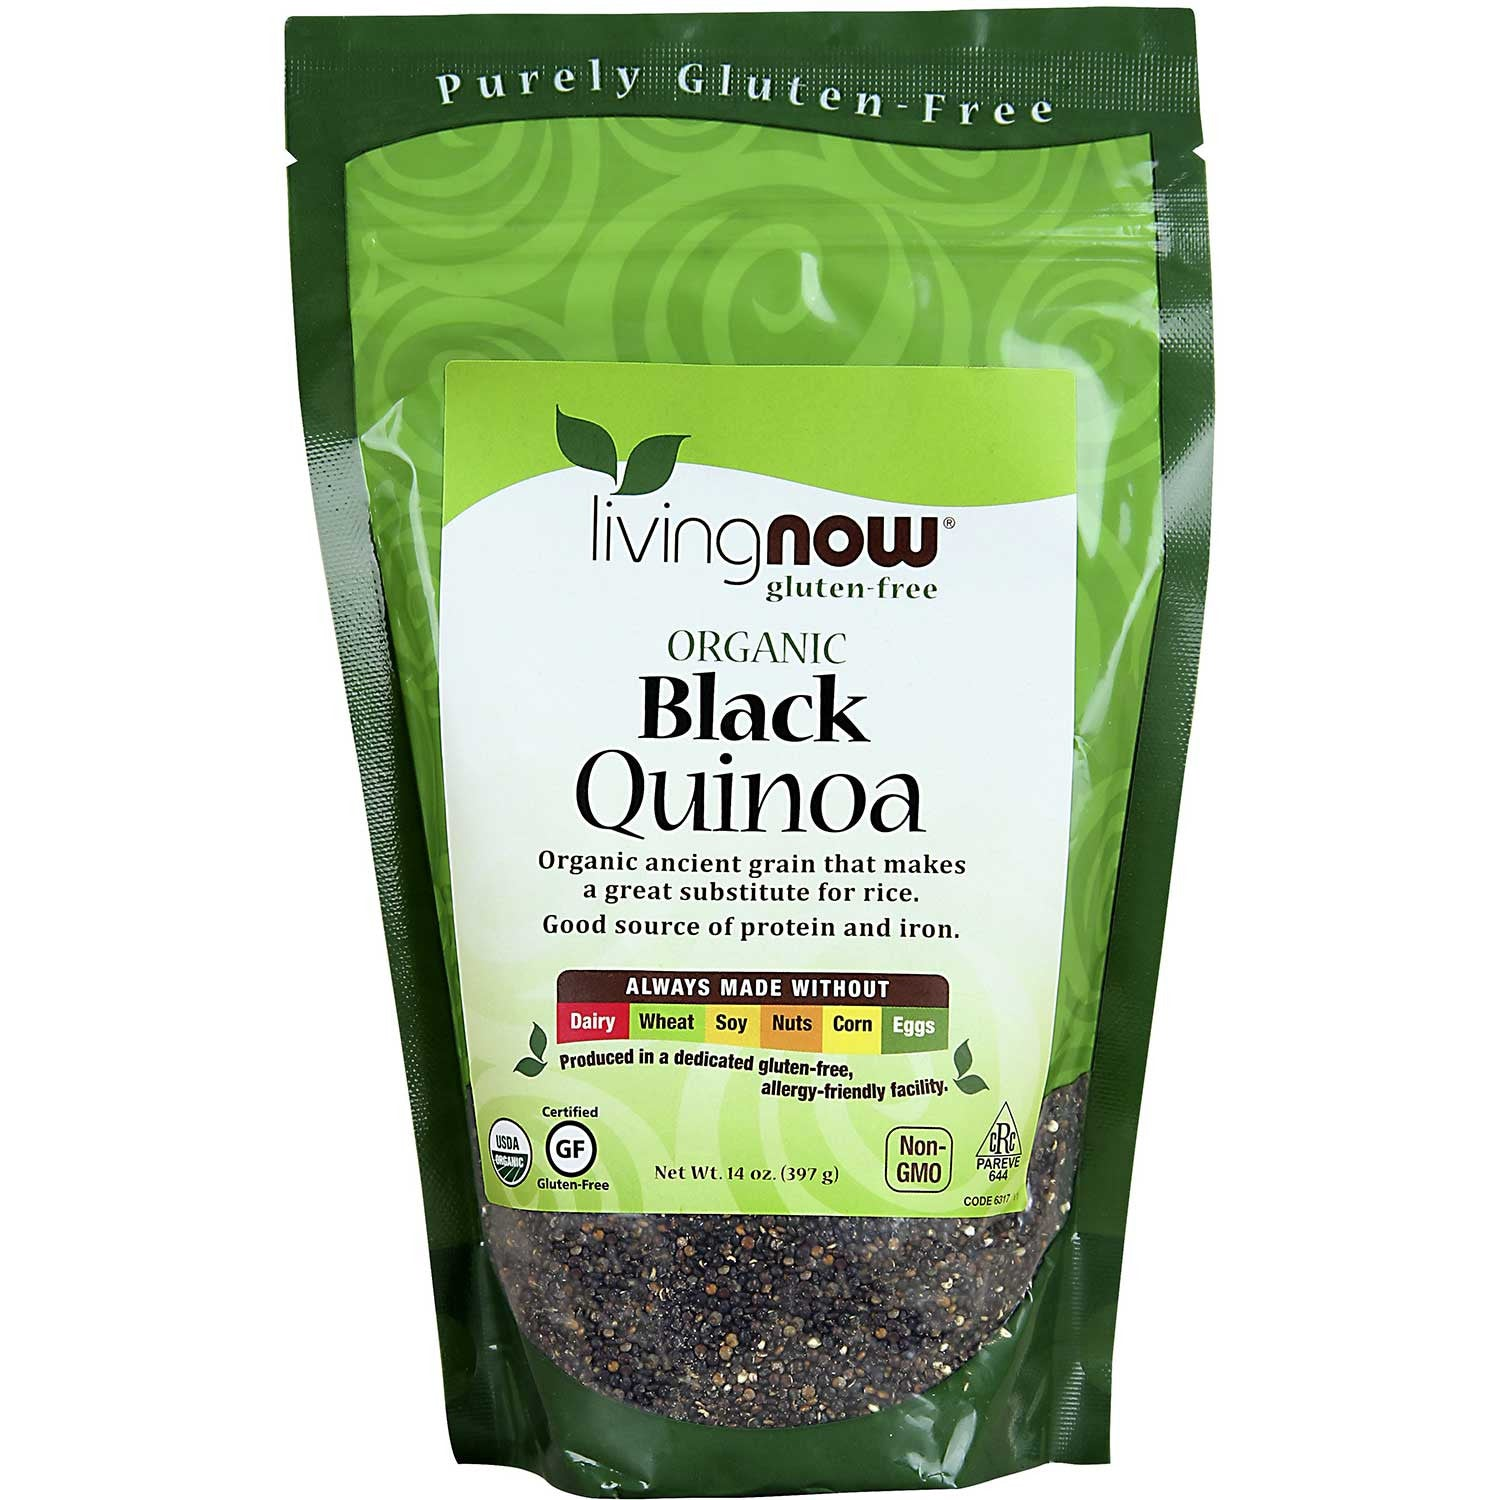 NOW Living NOW Organic Quinoa Grain - Black, 397g.